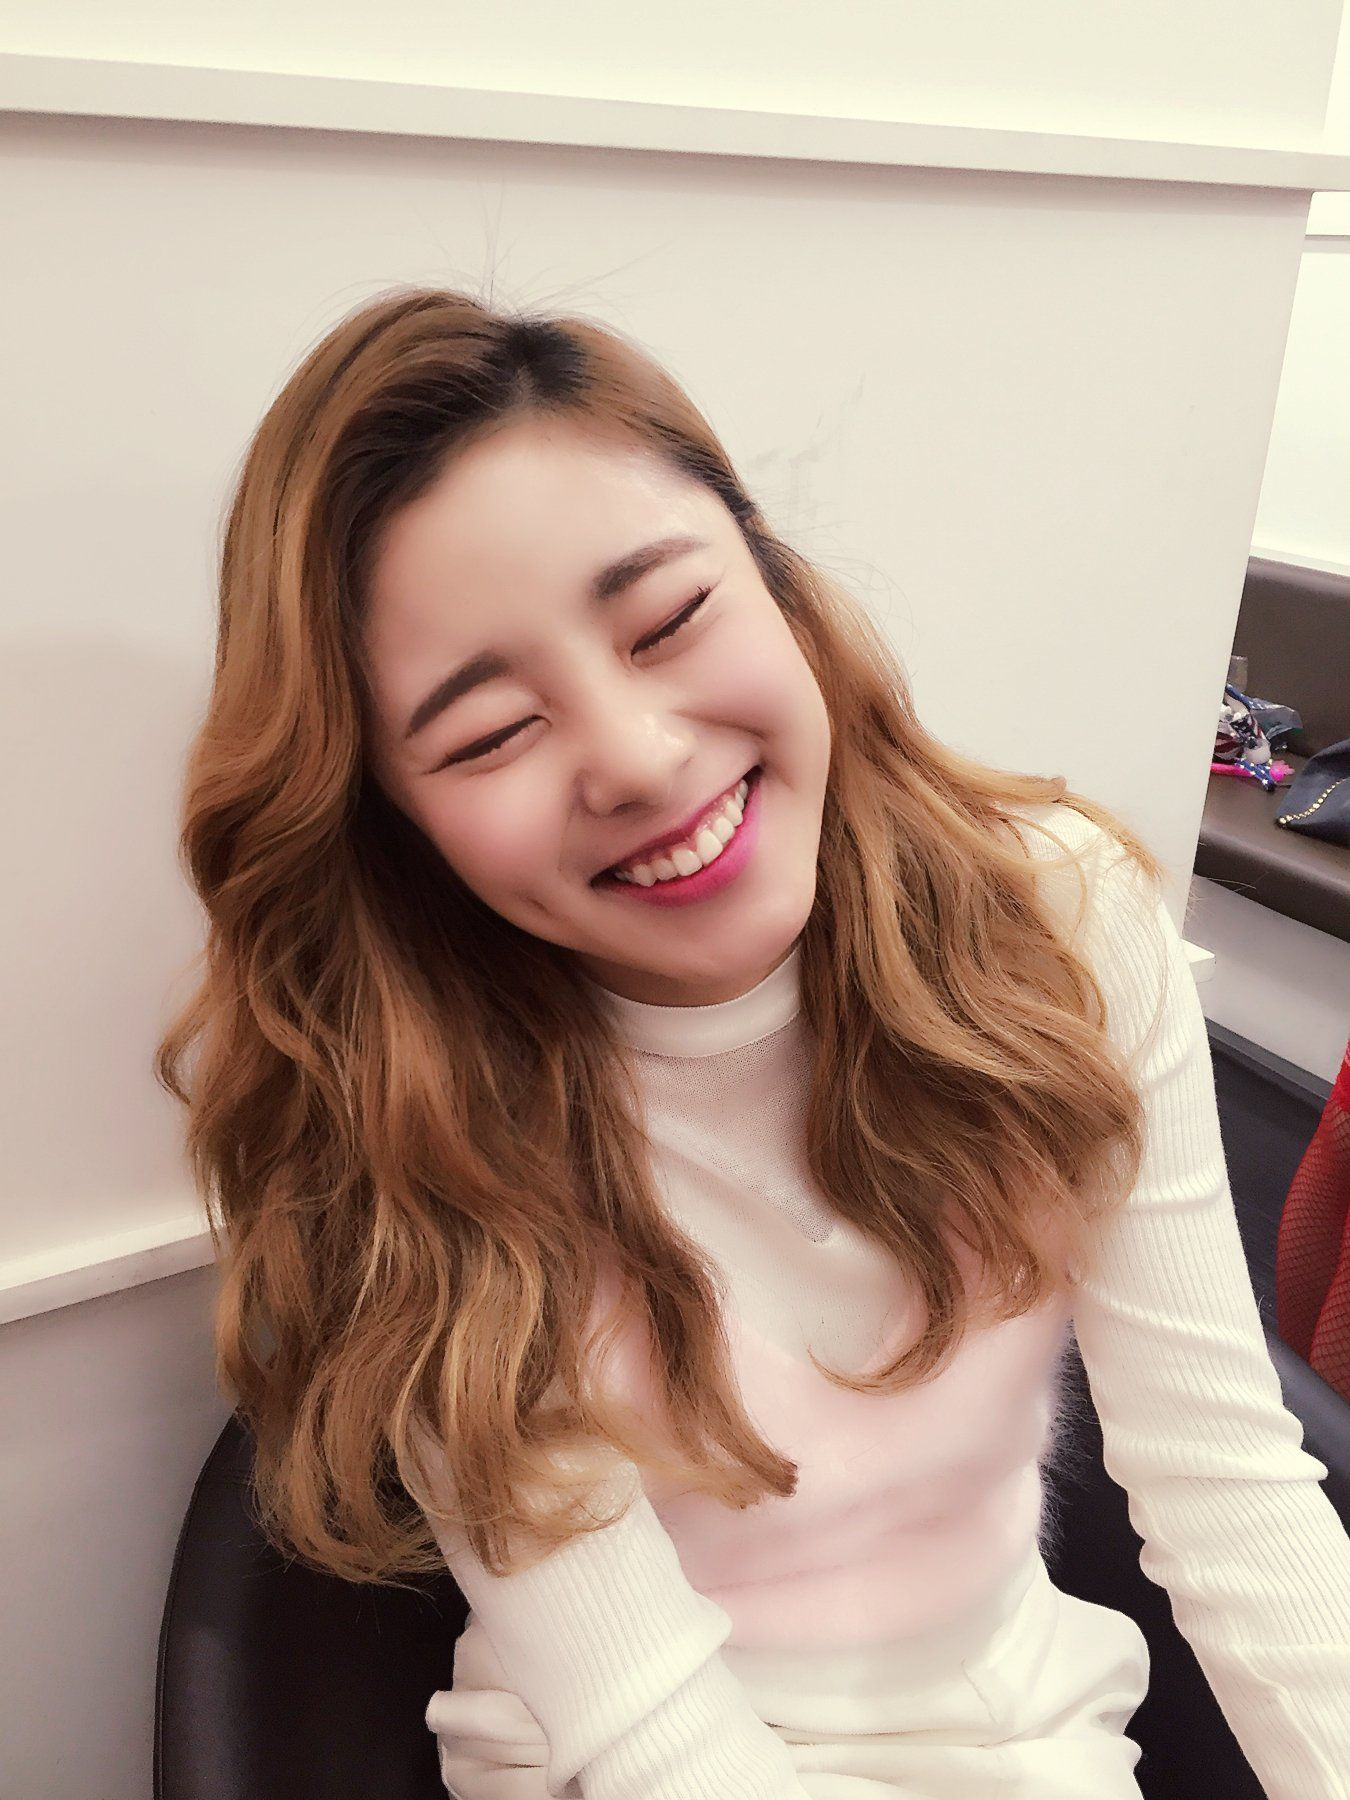 Idols with the cutest dimples - Page 2 - Celebrity Photos - OneHallyu